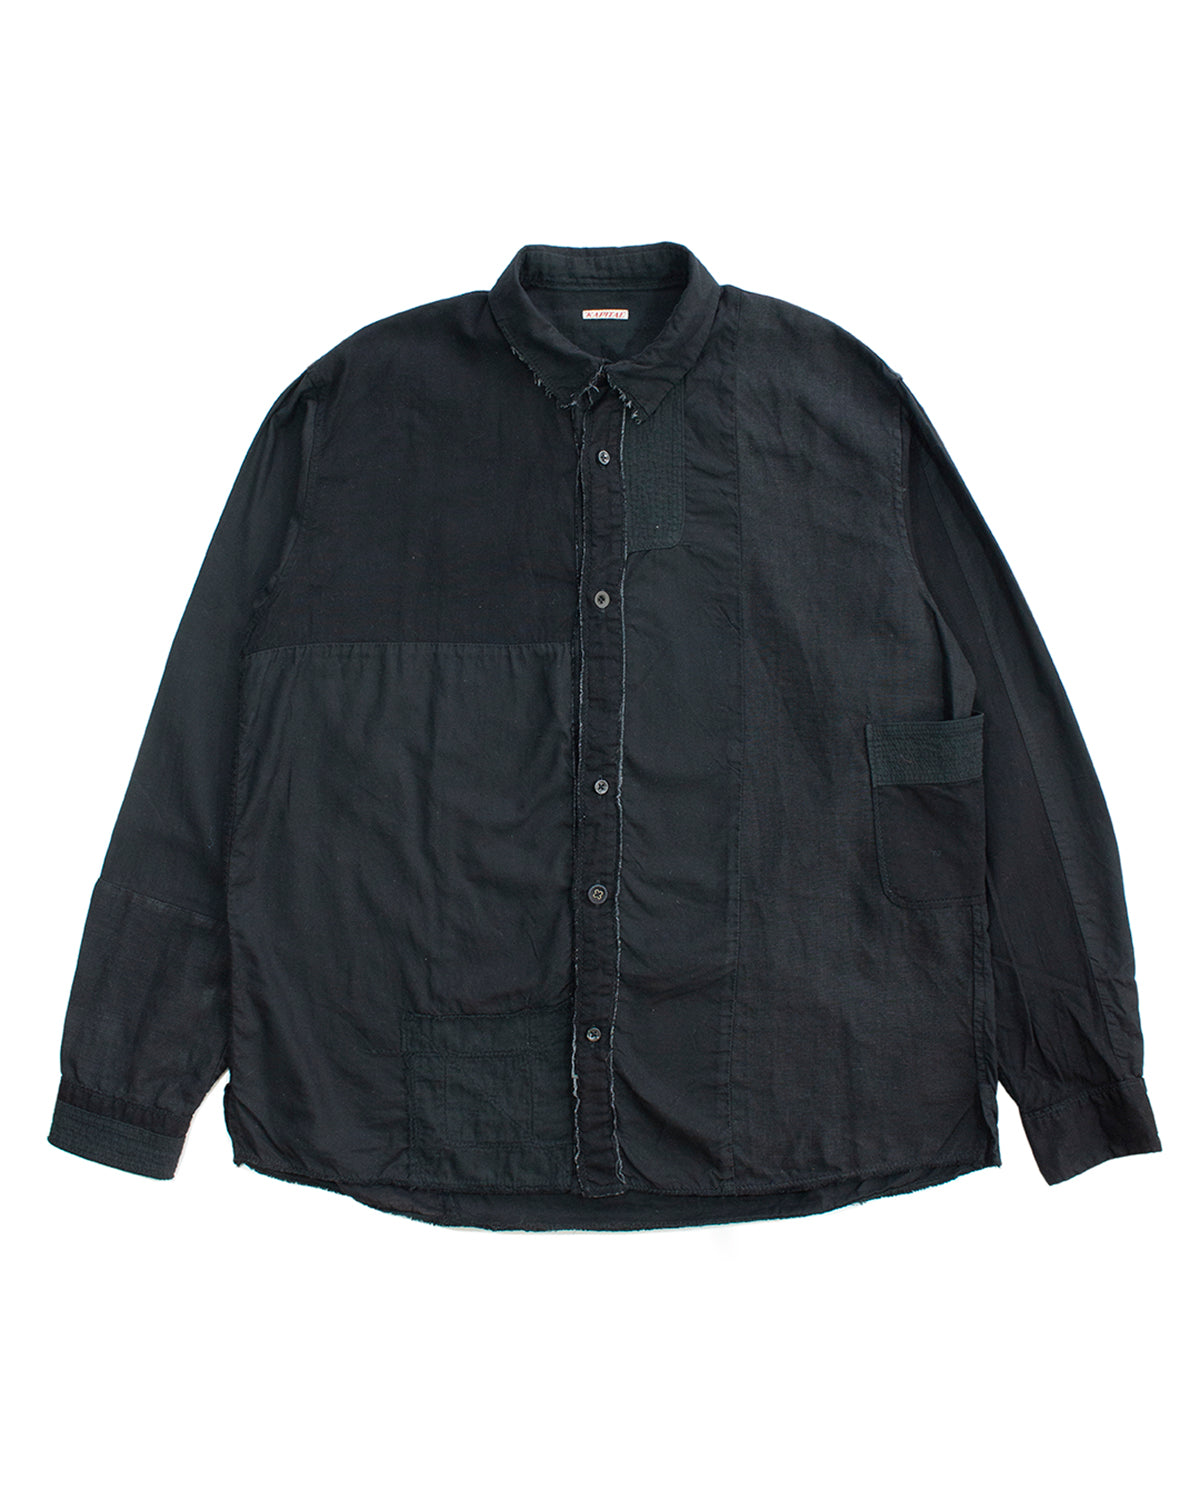 Kapital Black Patchwork Boro Overshirt SS2018